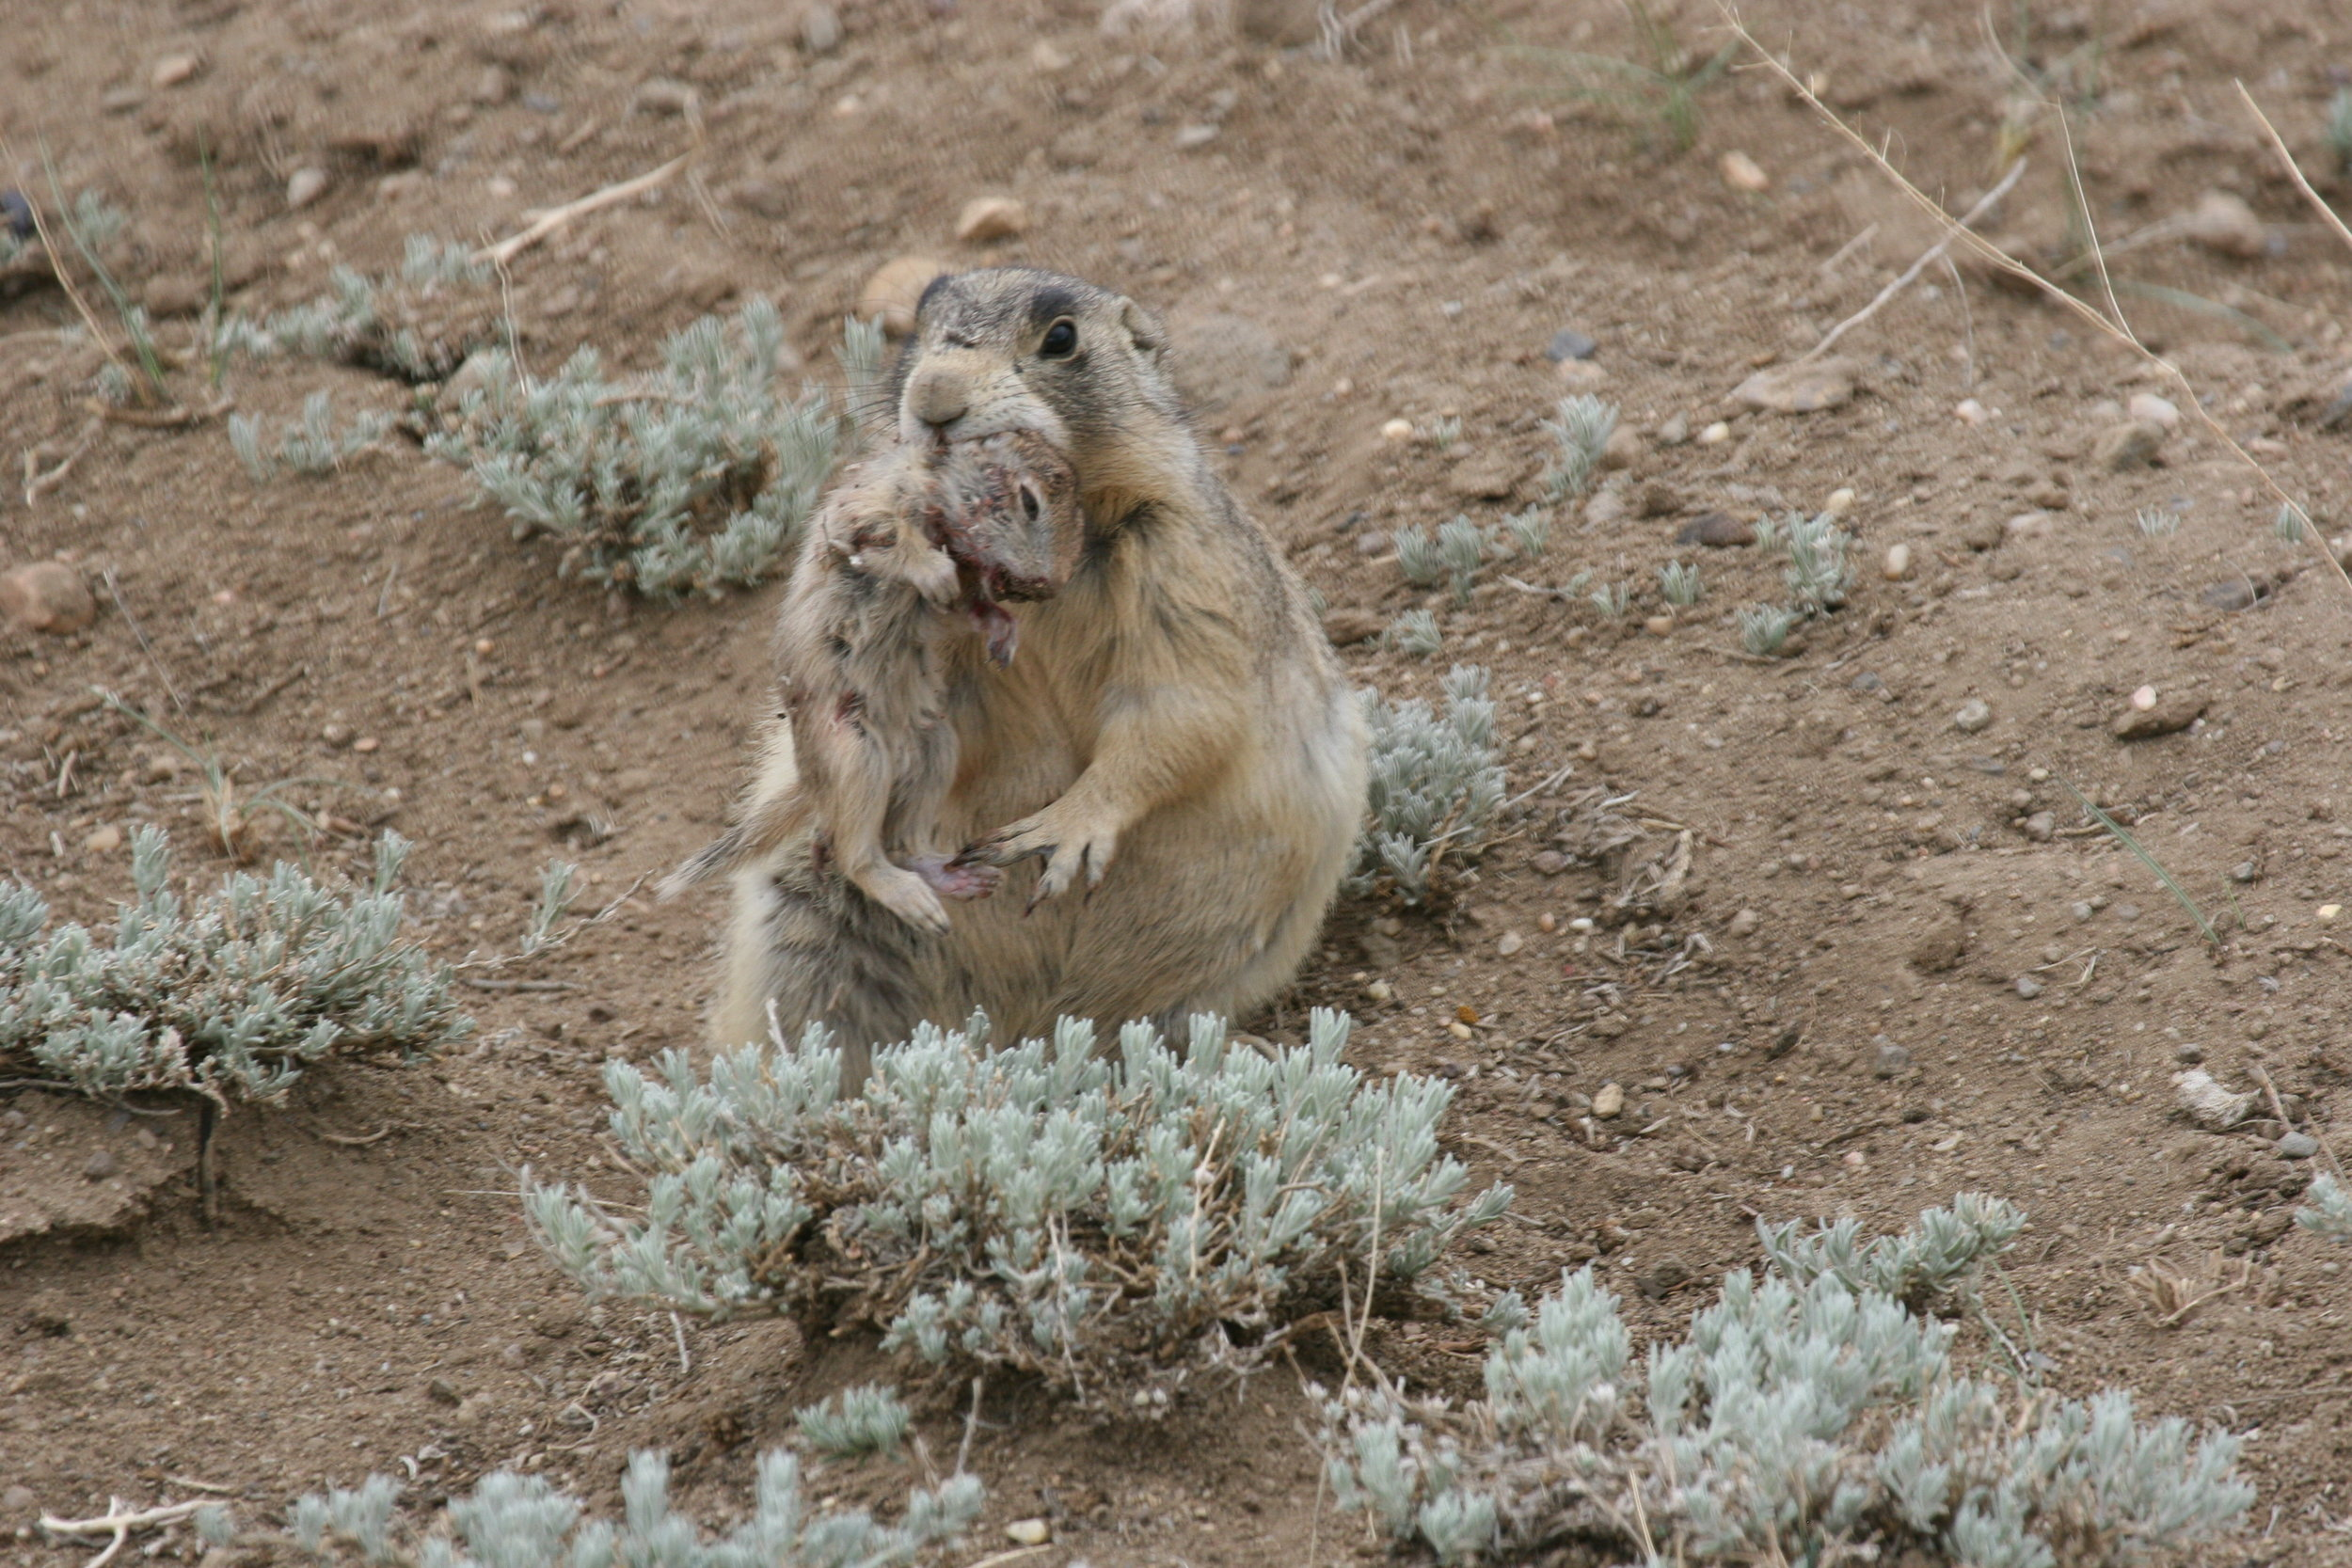 A lactating female prairie dog holds a dead juvenile Wyoming ground squirrel in her jaws. This image was featured in the  National Geographic article  featuring John and Charles Brown's research.  ©John Hoogland 2012